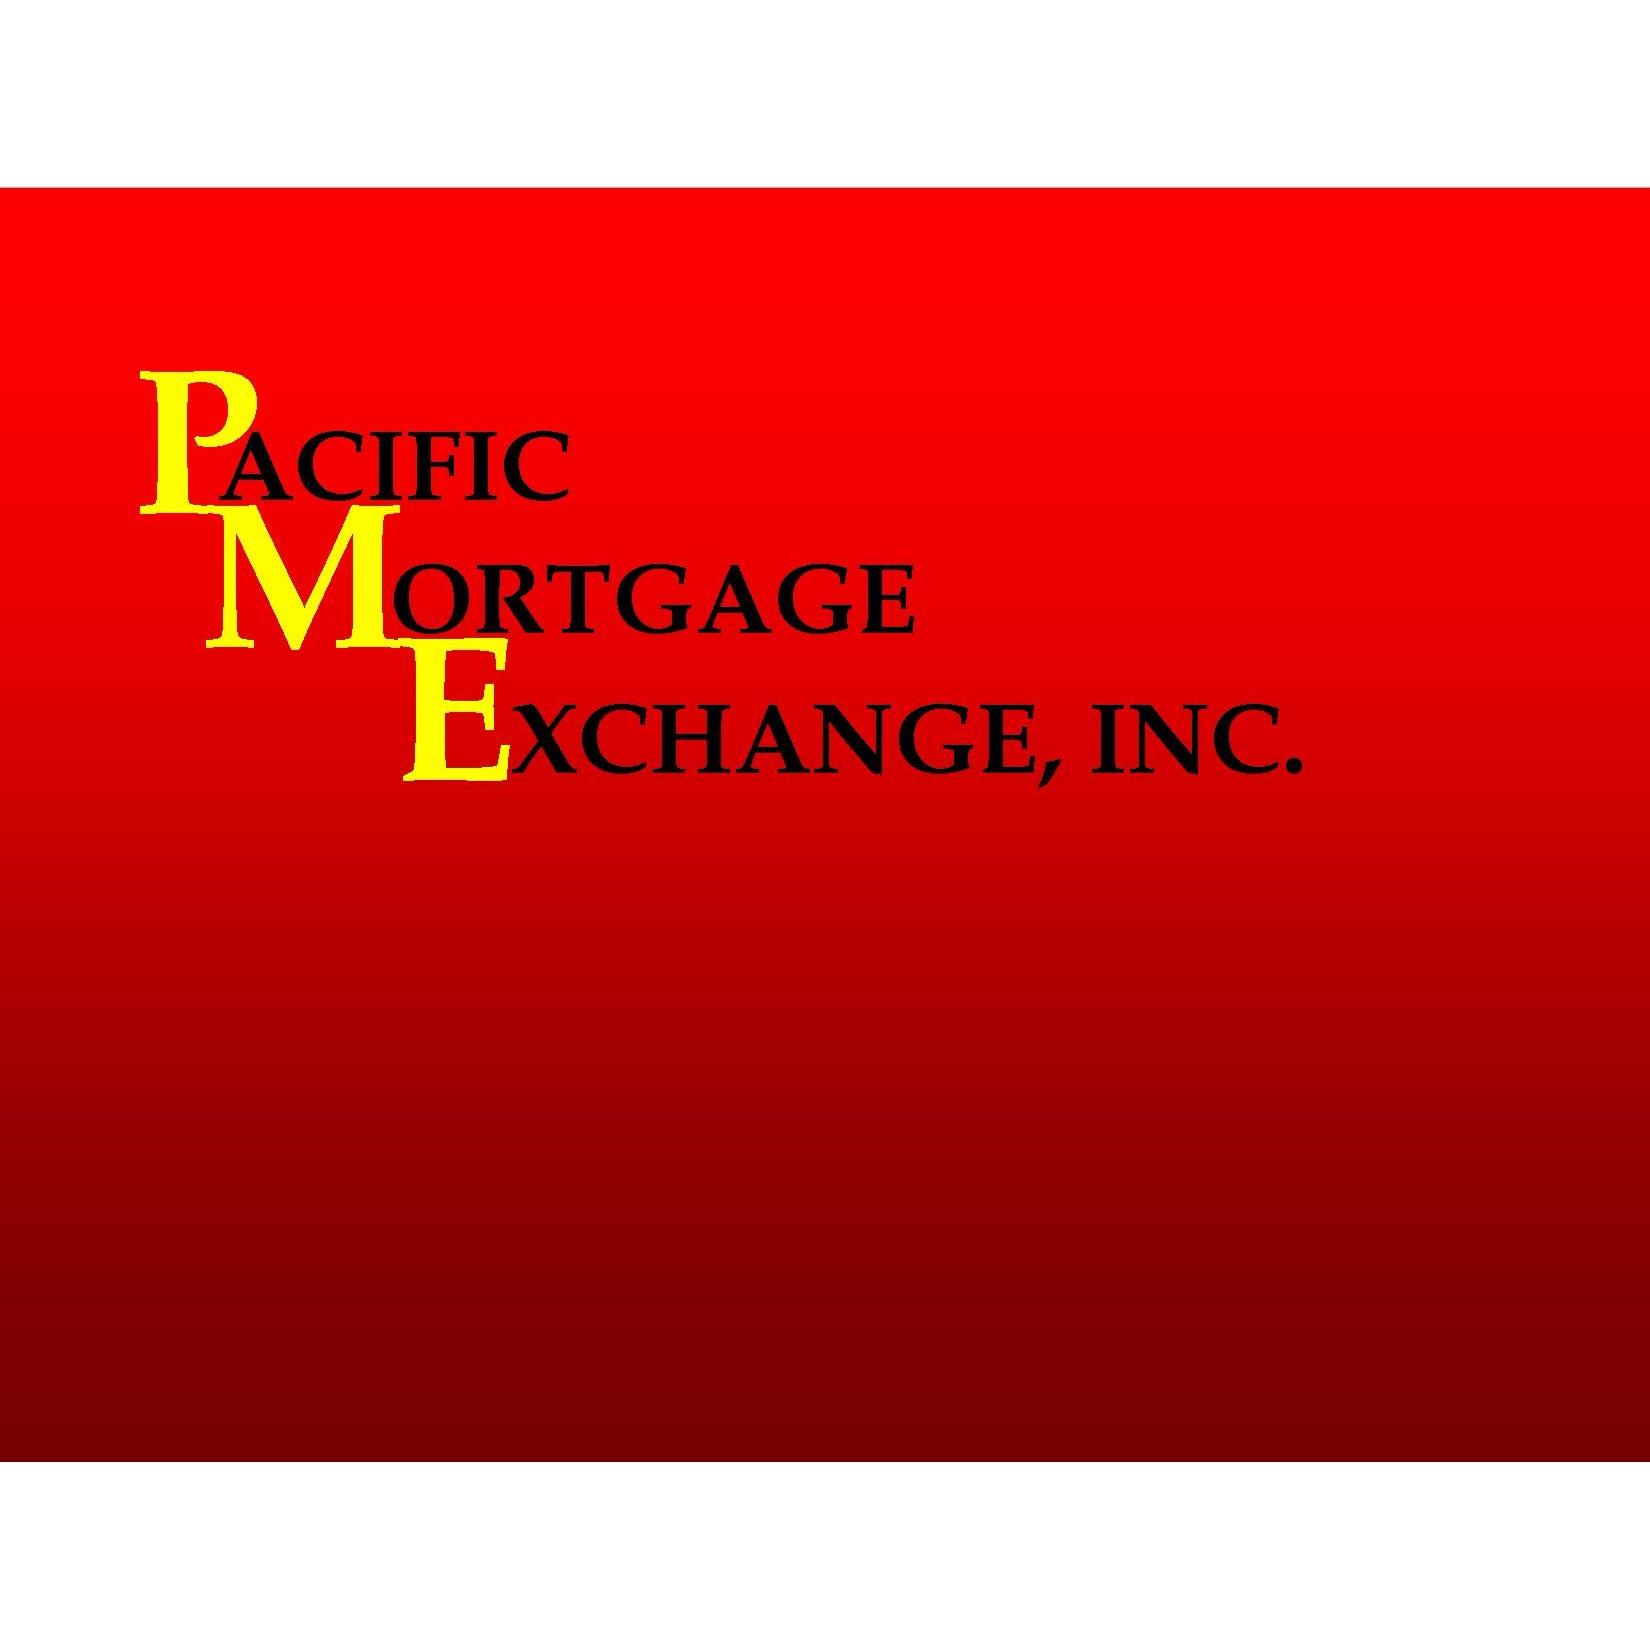 Pacific Mortgage Exchange, Inc.